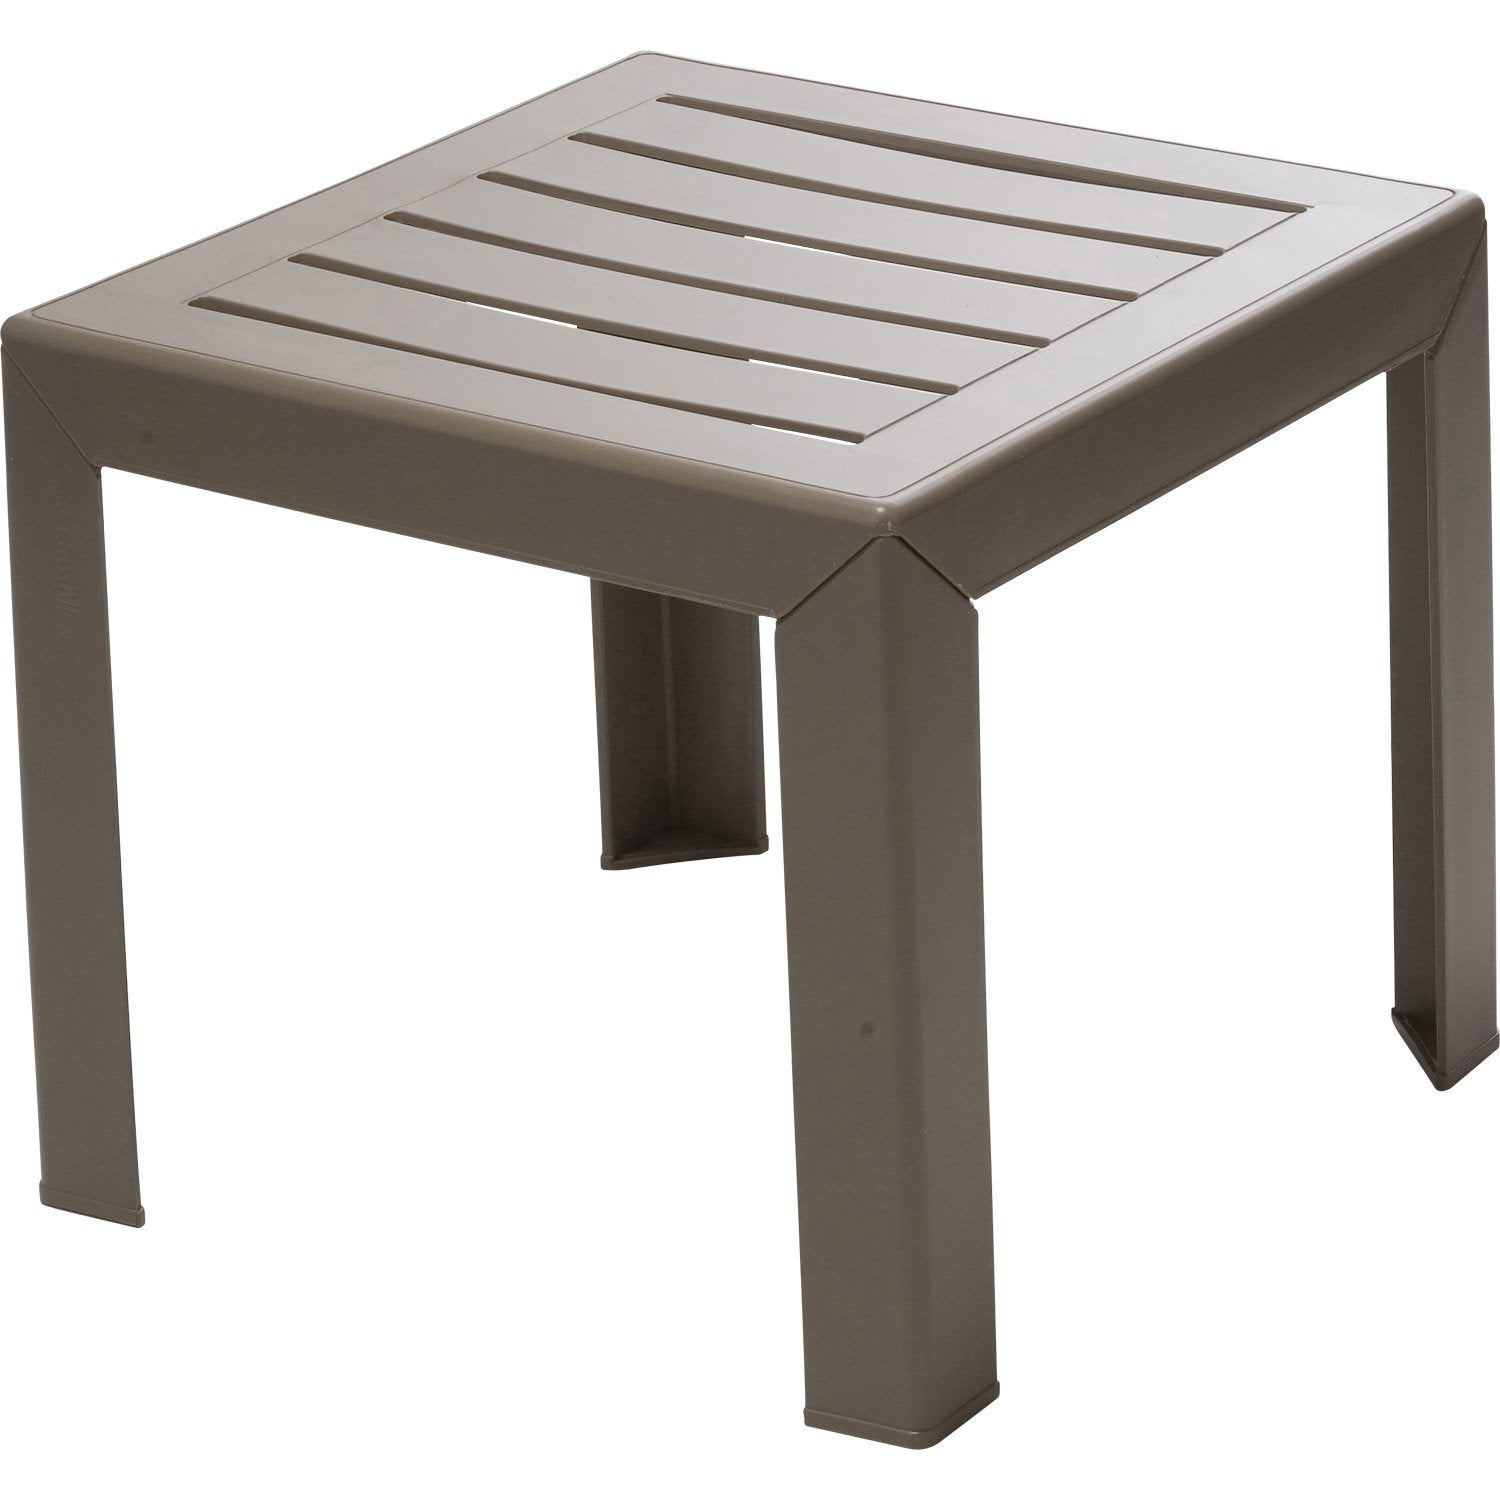 Table basse GROSFILLEX Miami carrée taupe 2 personnes | Leroy Merlin